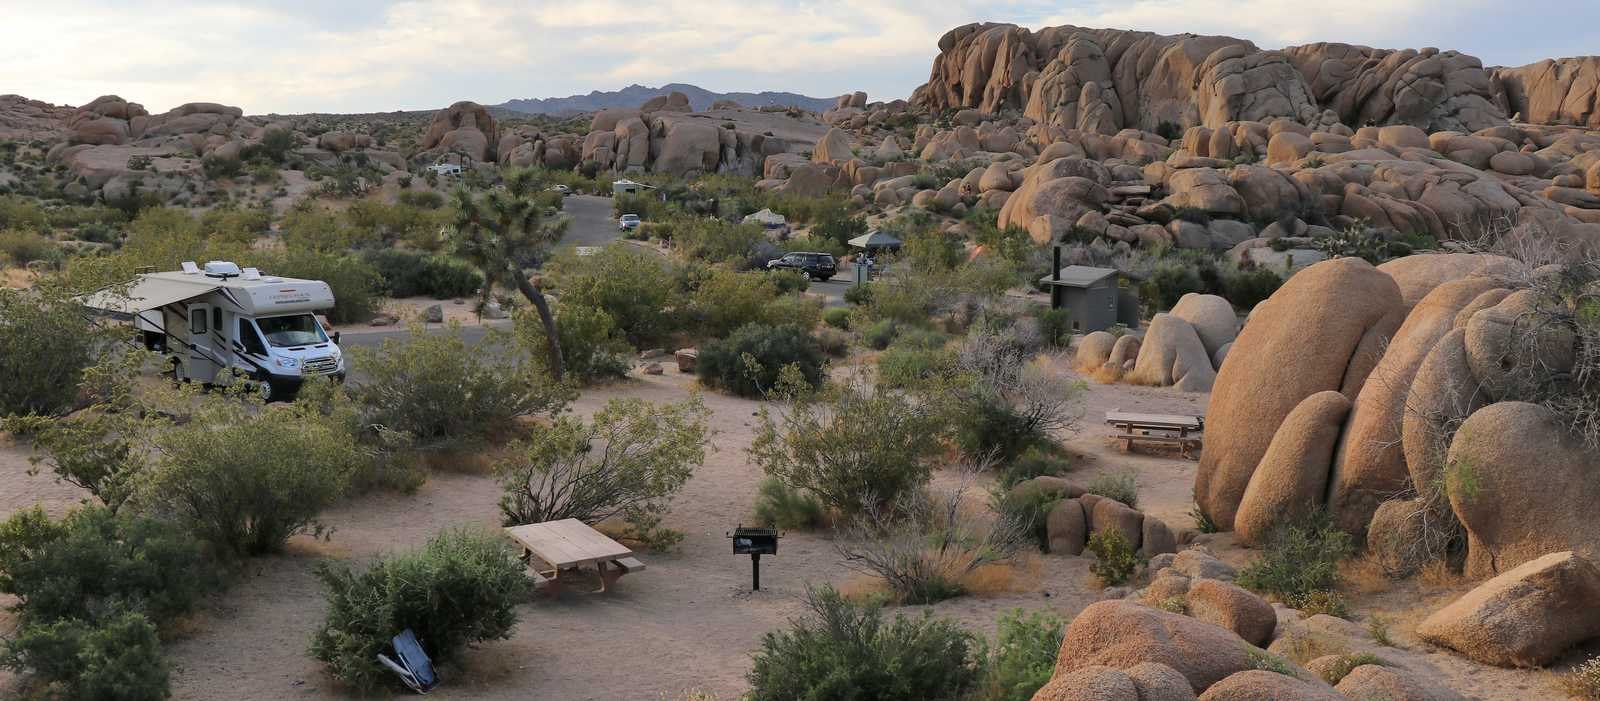 Jumbo Rocks Campground Joshua Tree NP